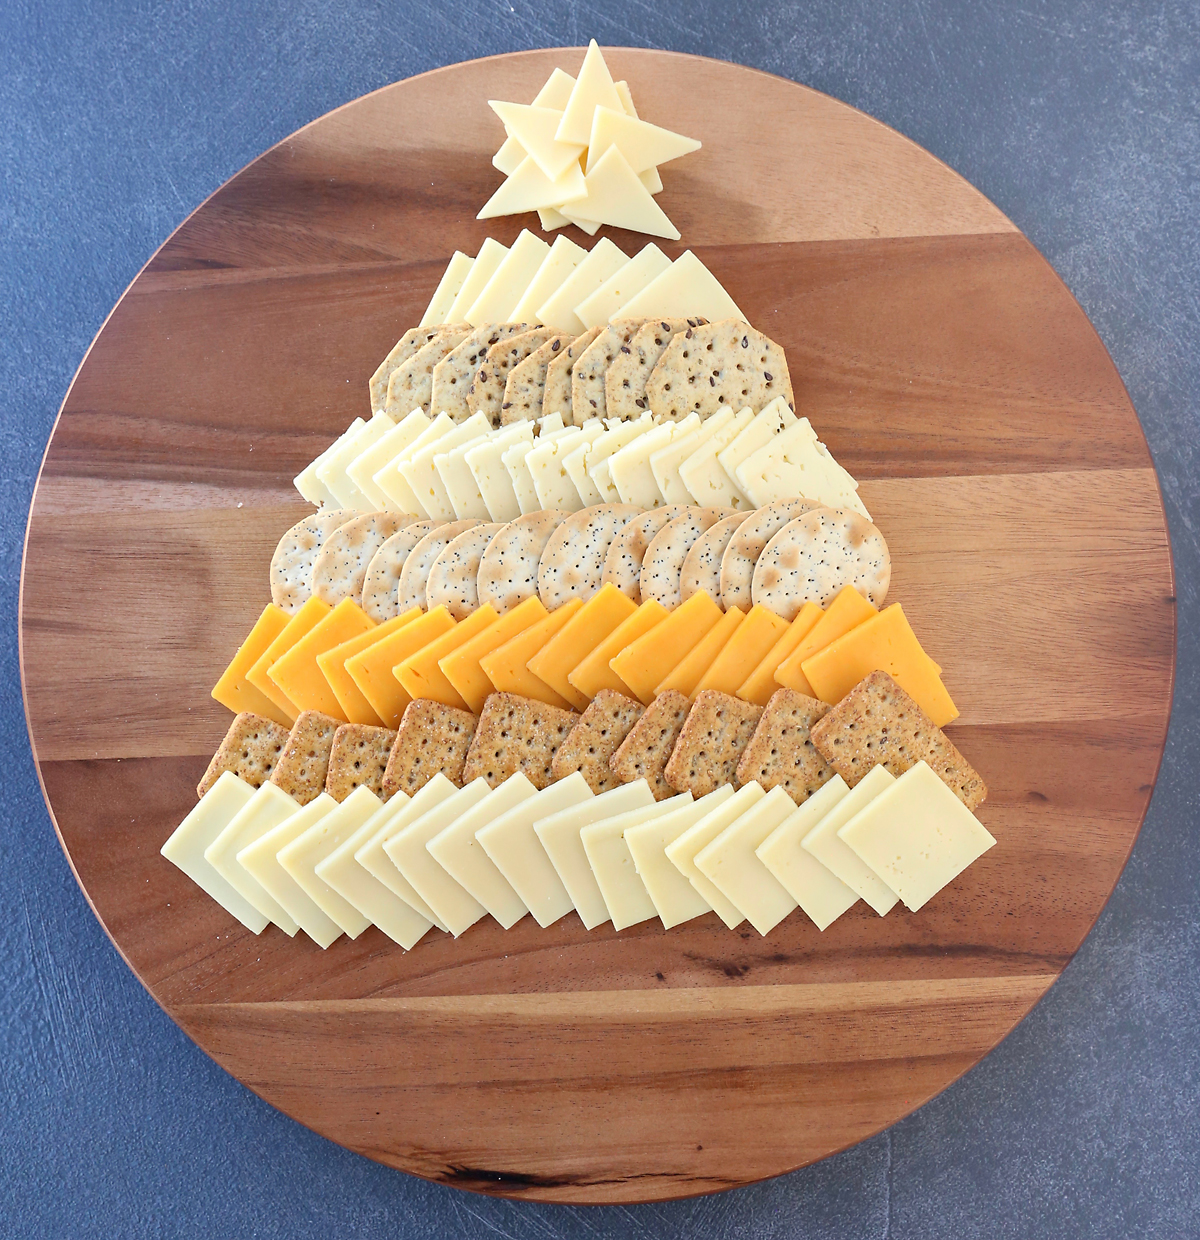 Cheese slices and crackers arranged in triangle Christmas tree shape